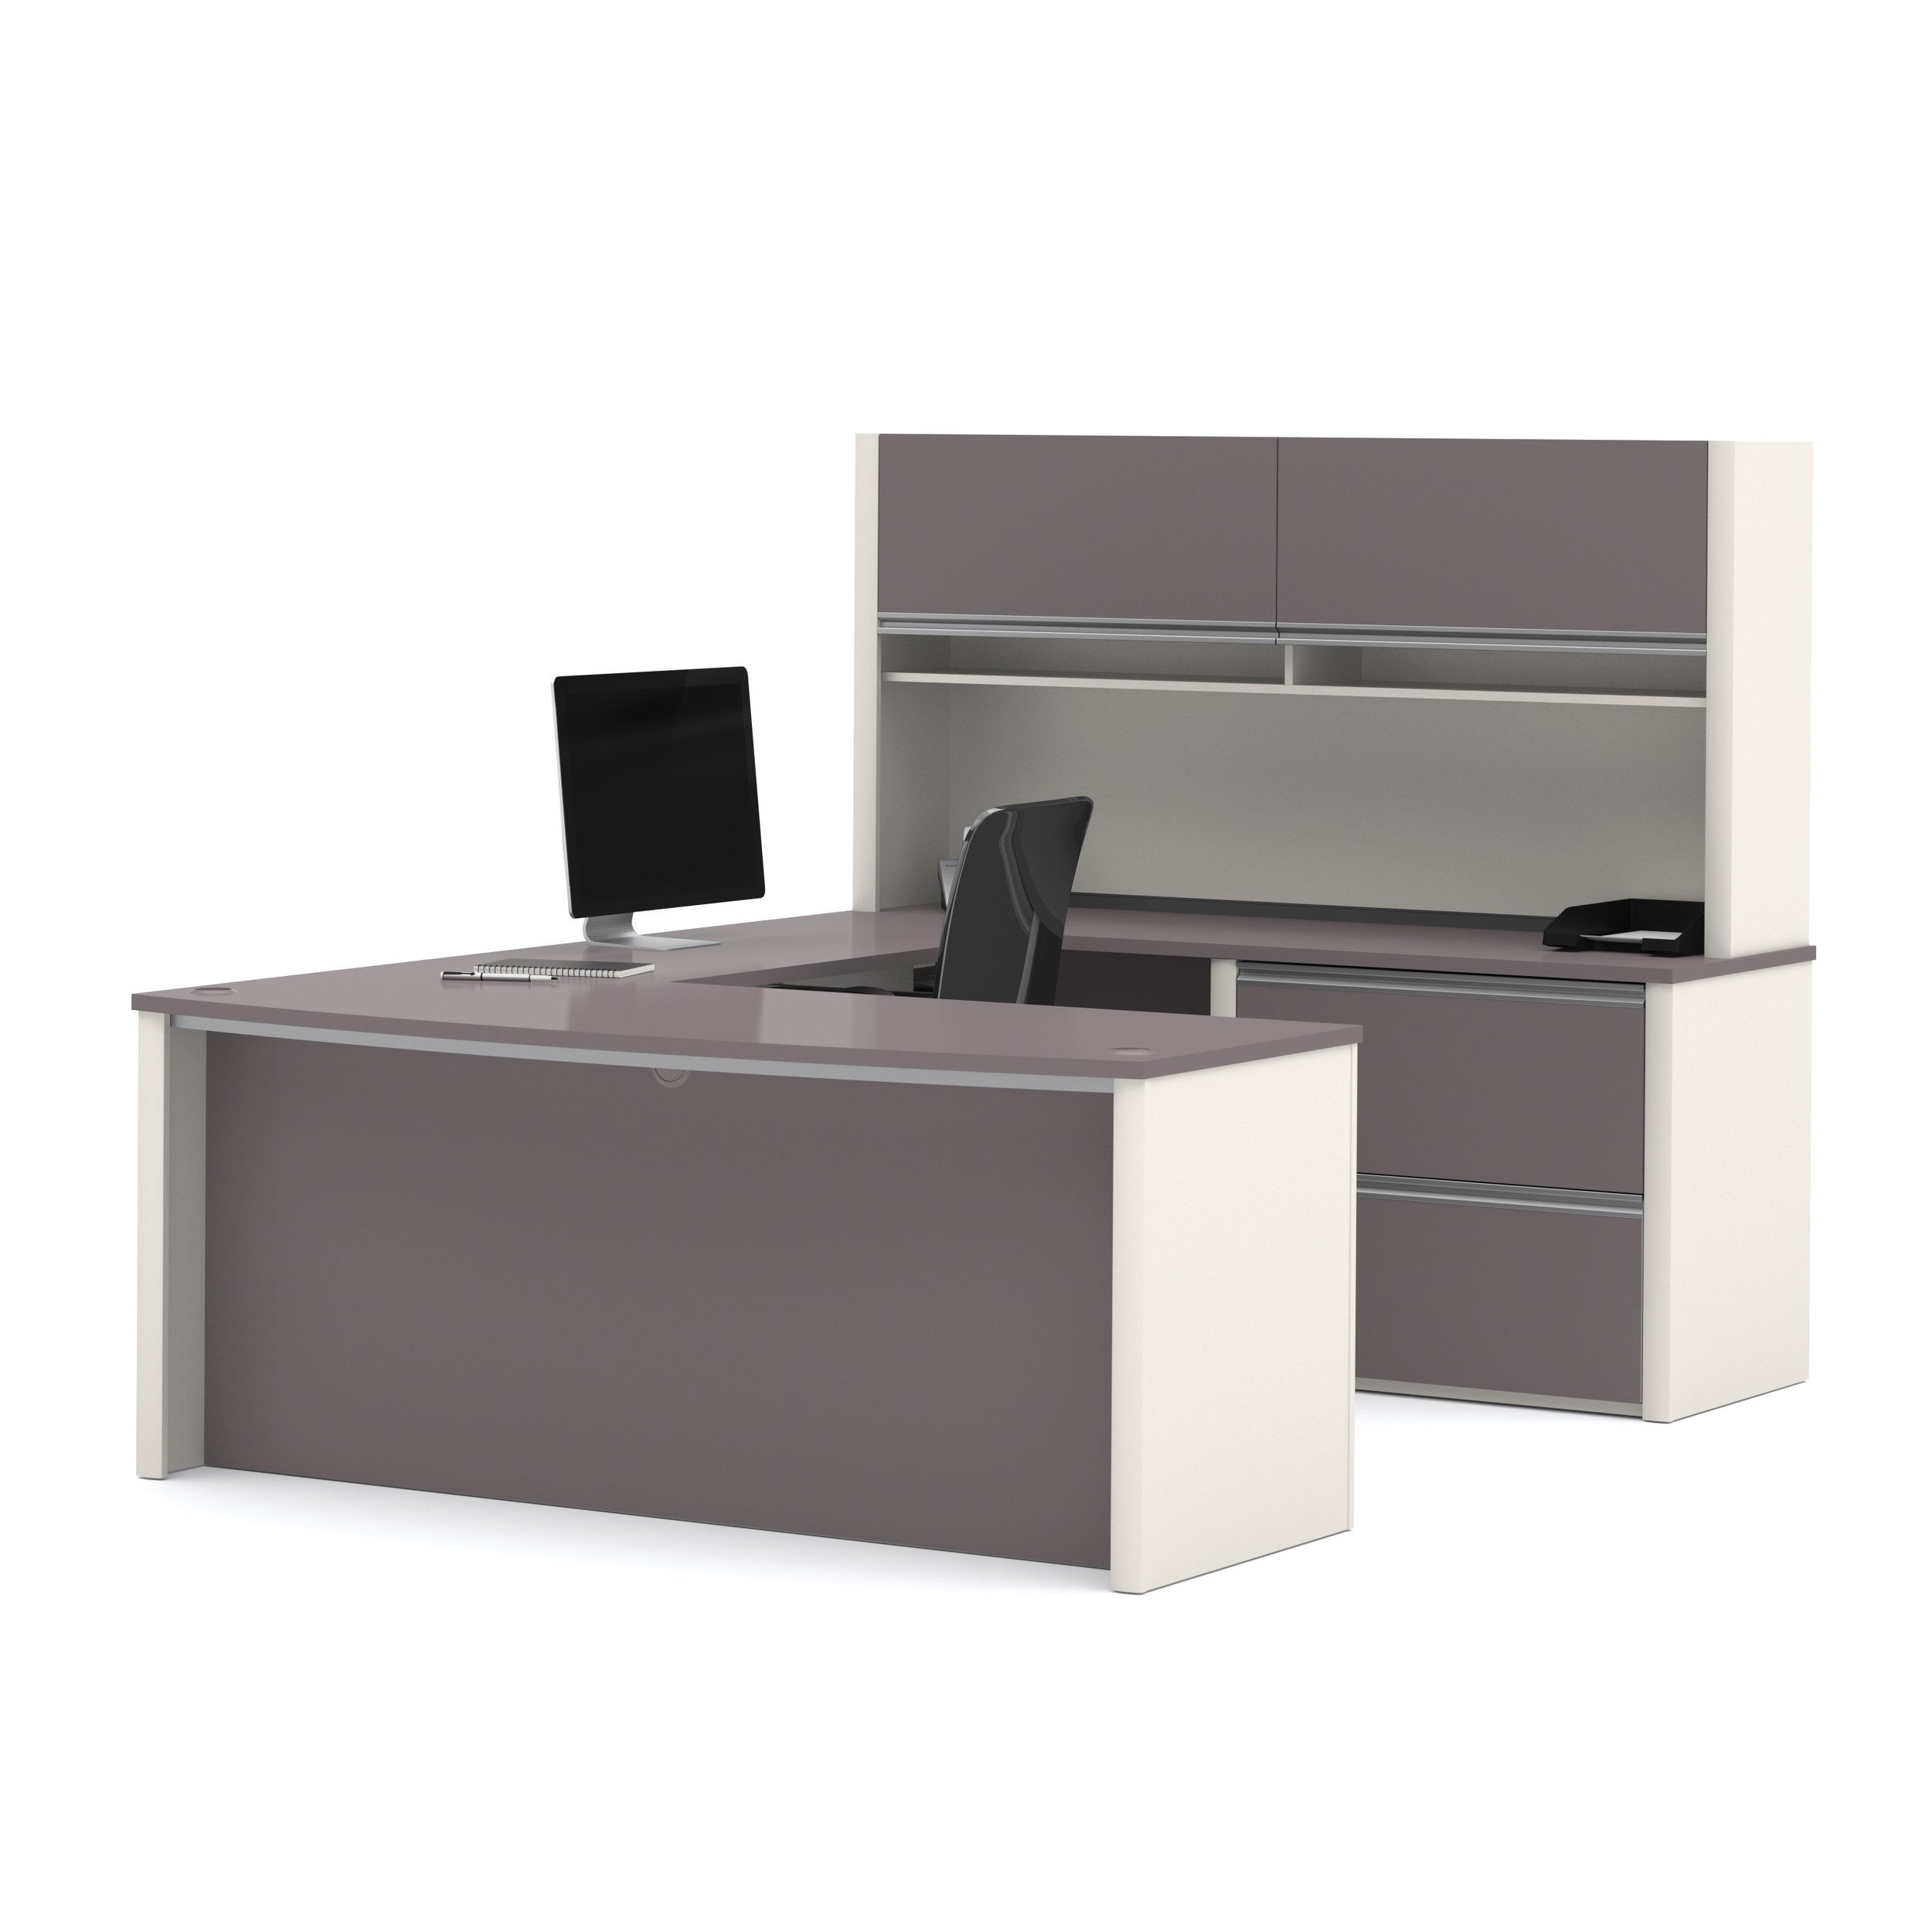 2 Piece Set Including A L Shaped Desk And A Lateral File Cabinet Connexion By Bestar Mimbarschool Com Ng